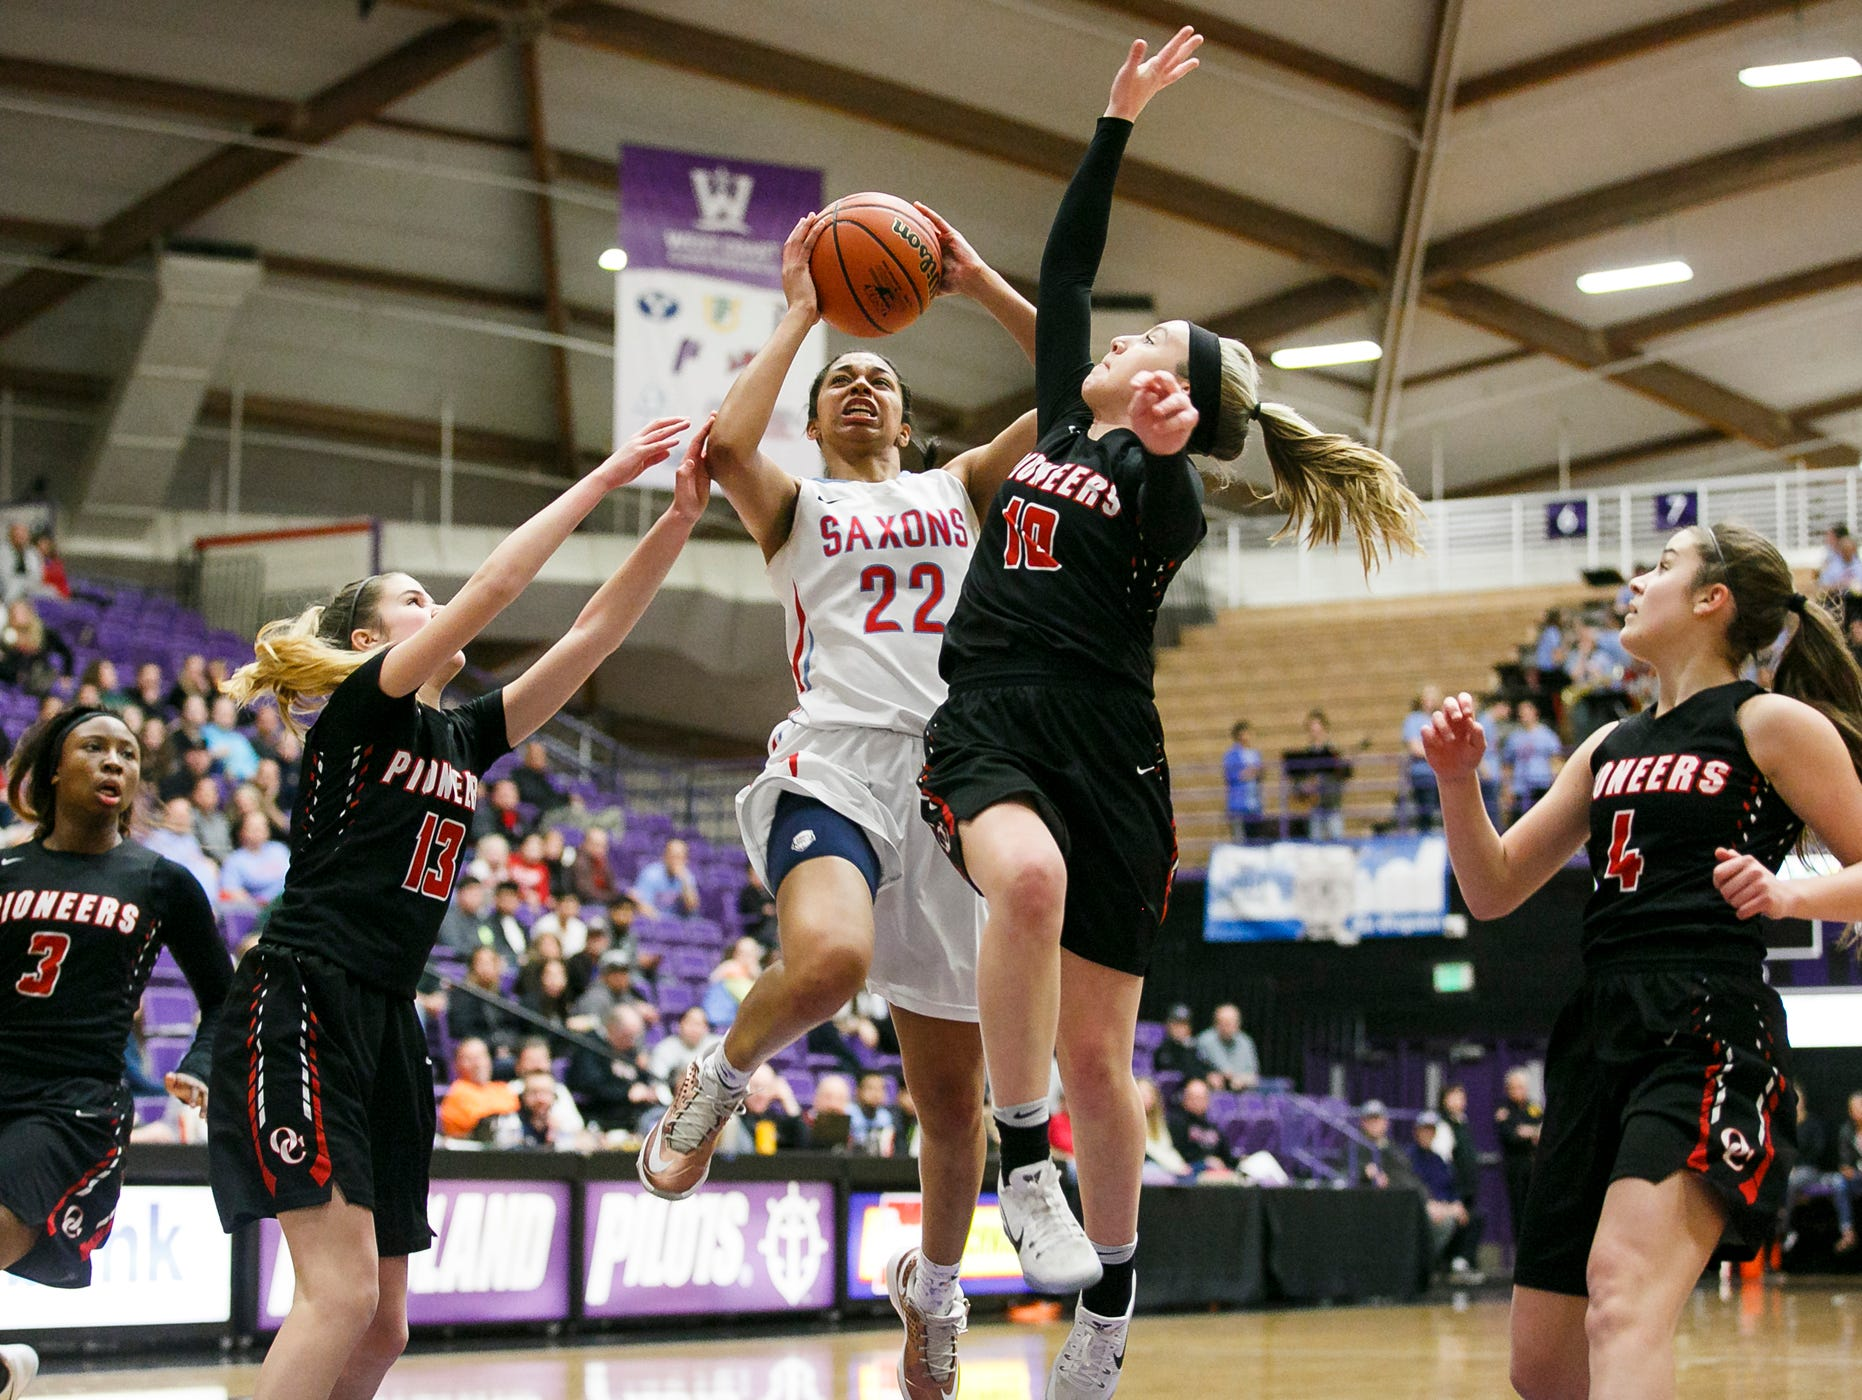 South Salem's Evina Westbrook goes up for a basket over Oregon City defense in the OSAA 6A semifinal state championships on Friday, March 10, 2017, at the University of Portland. South Salem lost 46-54.